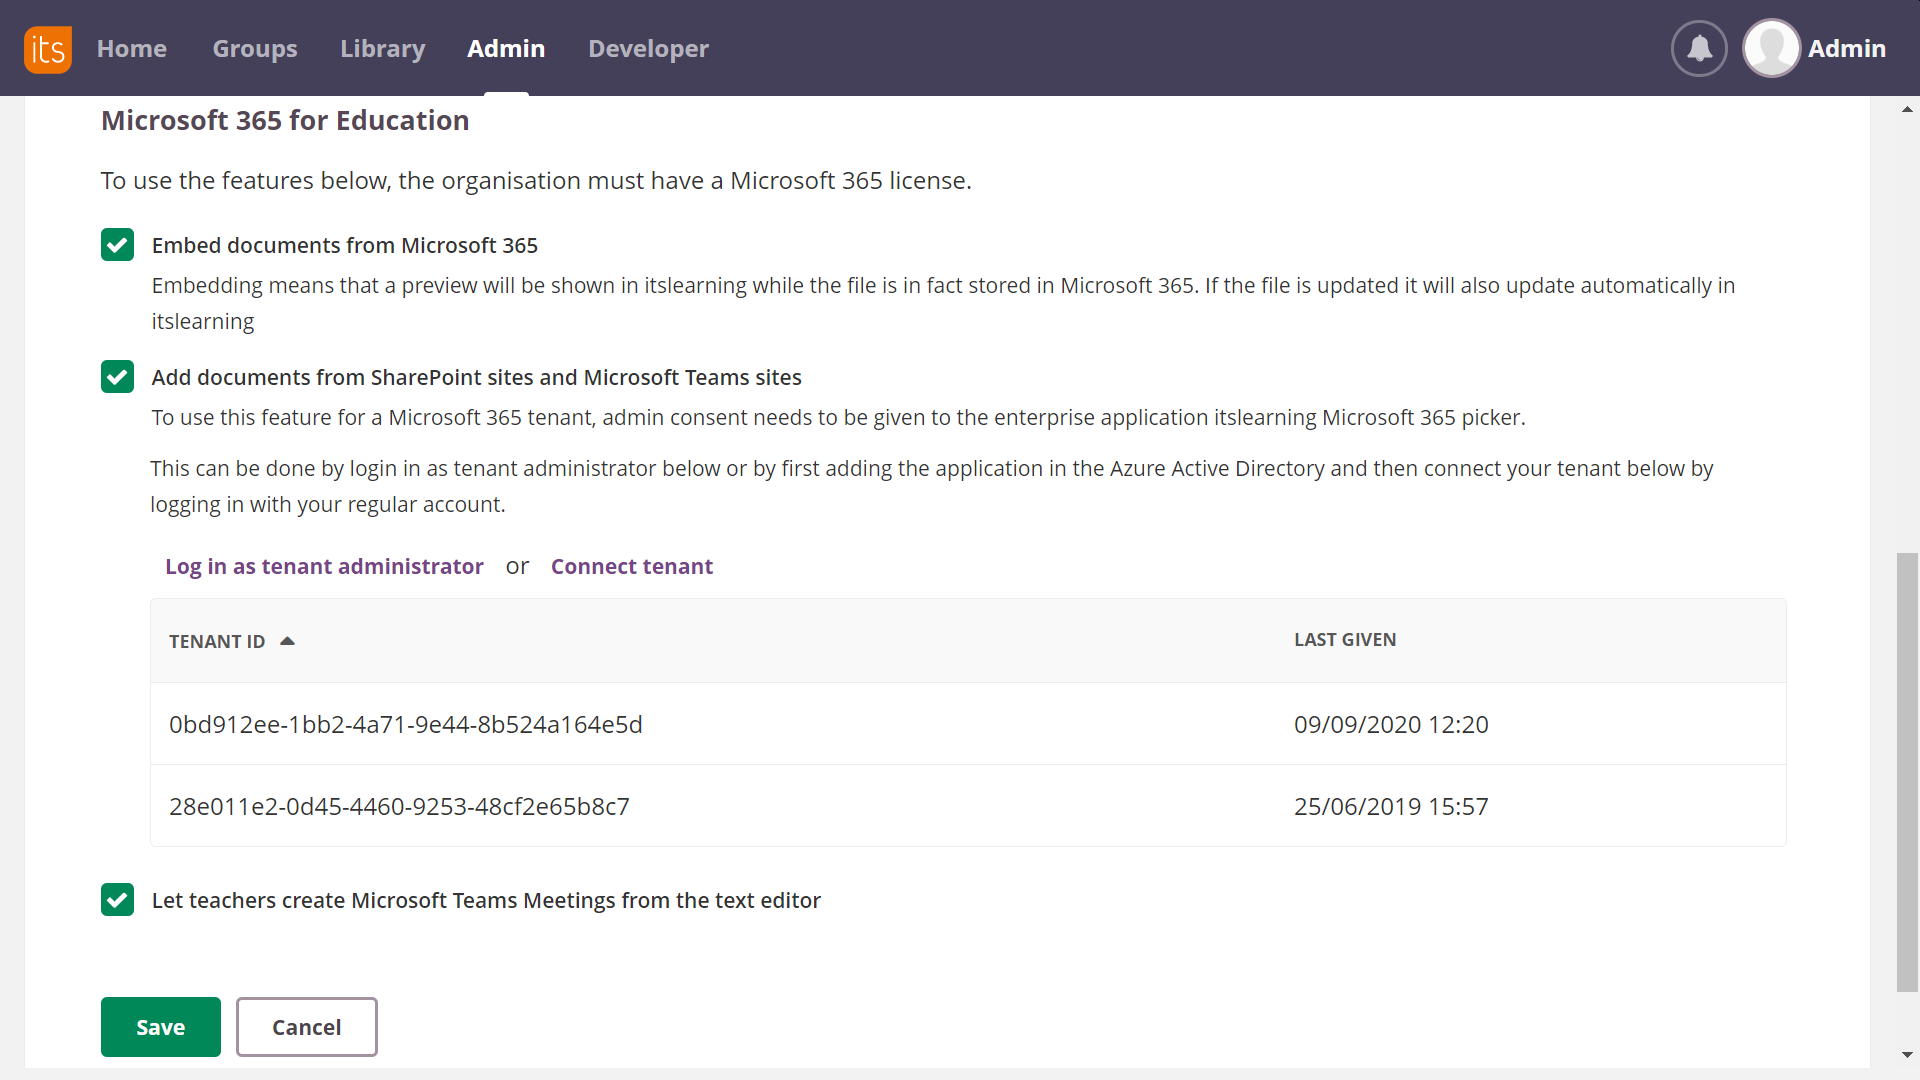 screenshot cloud service for MS 365 for education